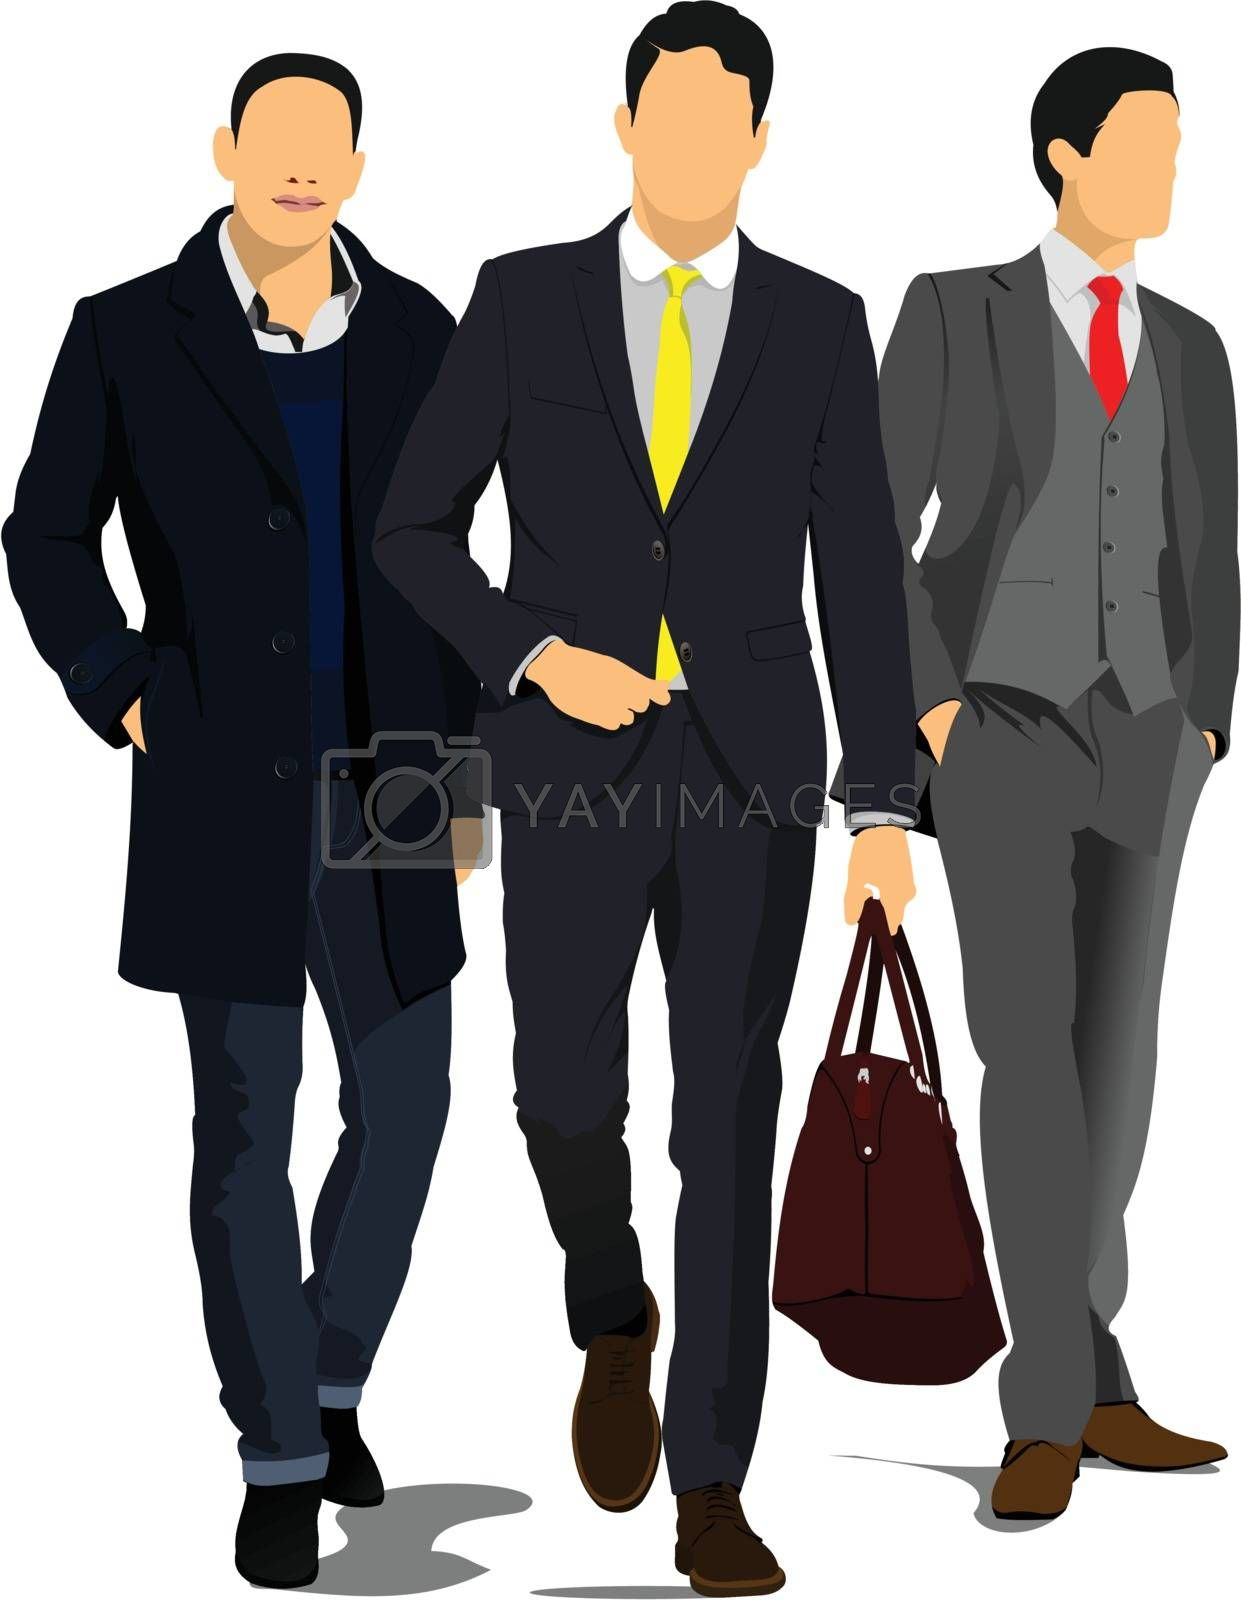 Royalty free image of Three Young handsome men. Businessman.Vector illustration by leonido